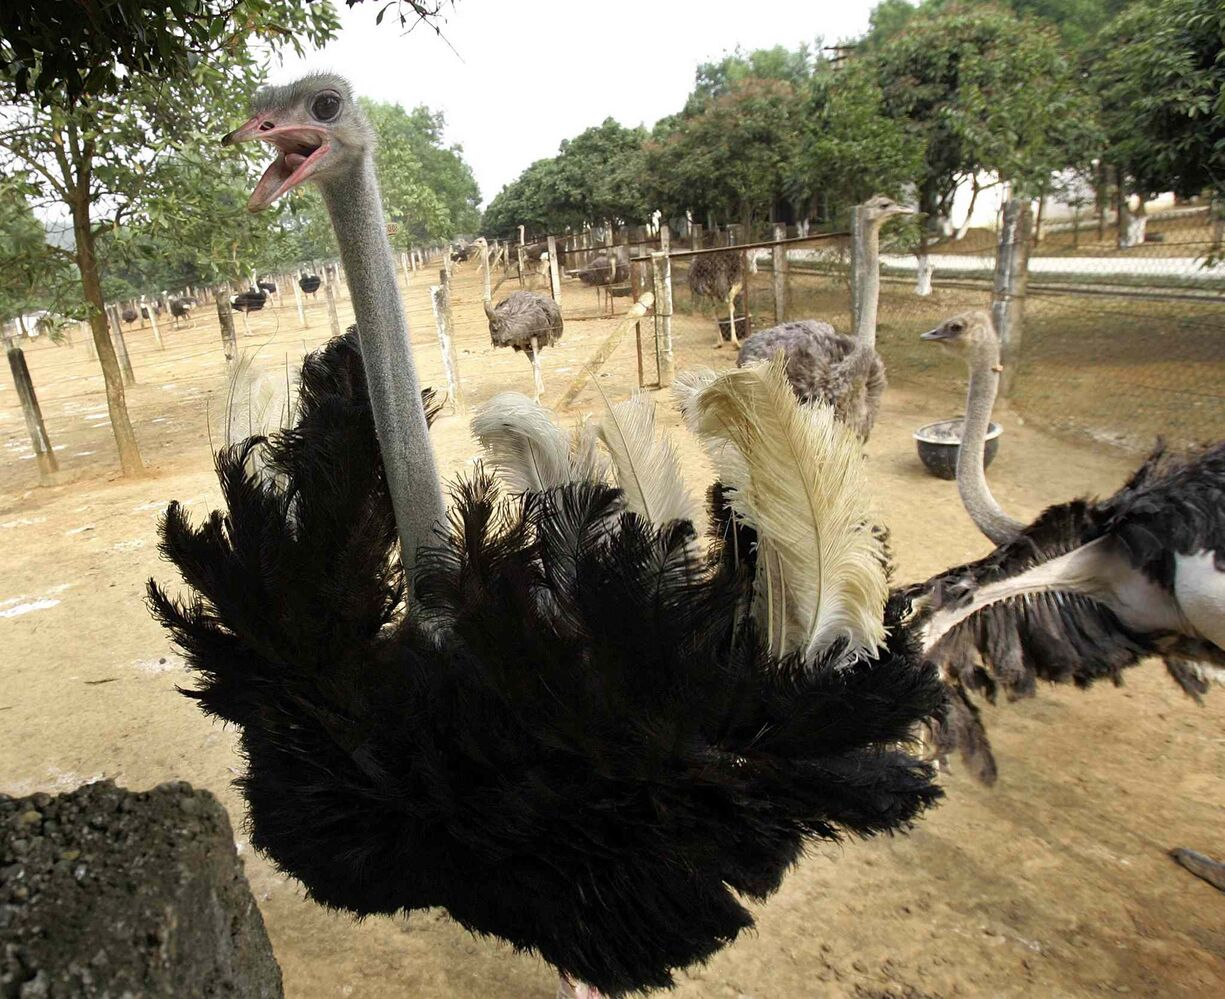 11 (d) struthioniformes, including, but not limited to, flightless ratites such as ostriches (pictured), rheas, cassowaries, emus and kiwis.  (Chitose Suzuki / The Associated Press)